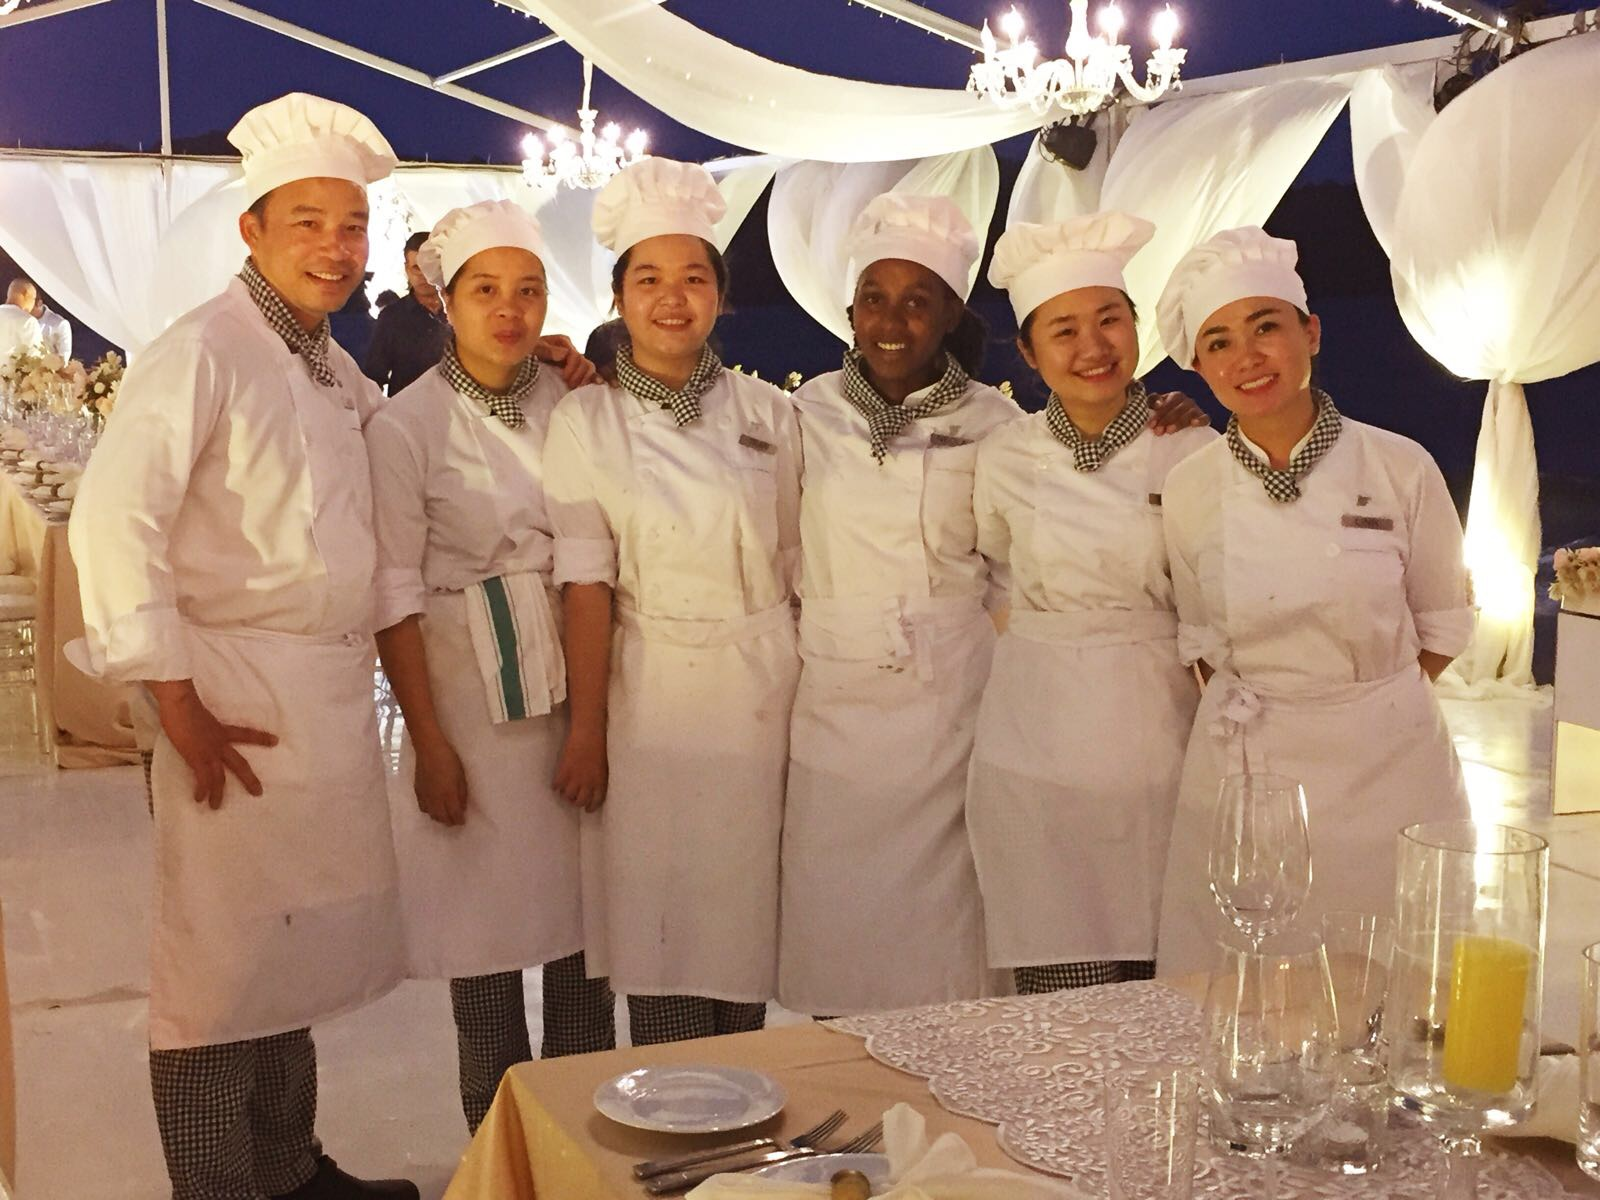 Placement Year International - Culinary Arts student on work placement at JW Marriott in Vietnam